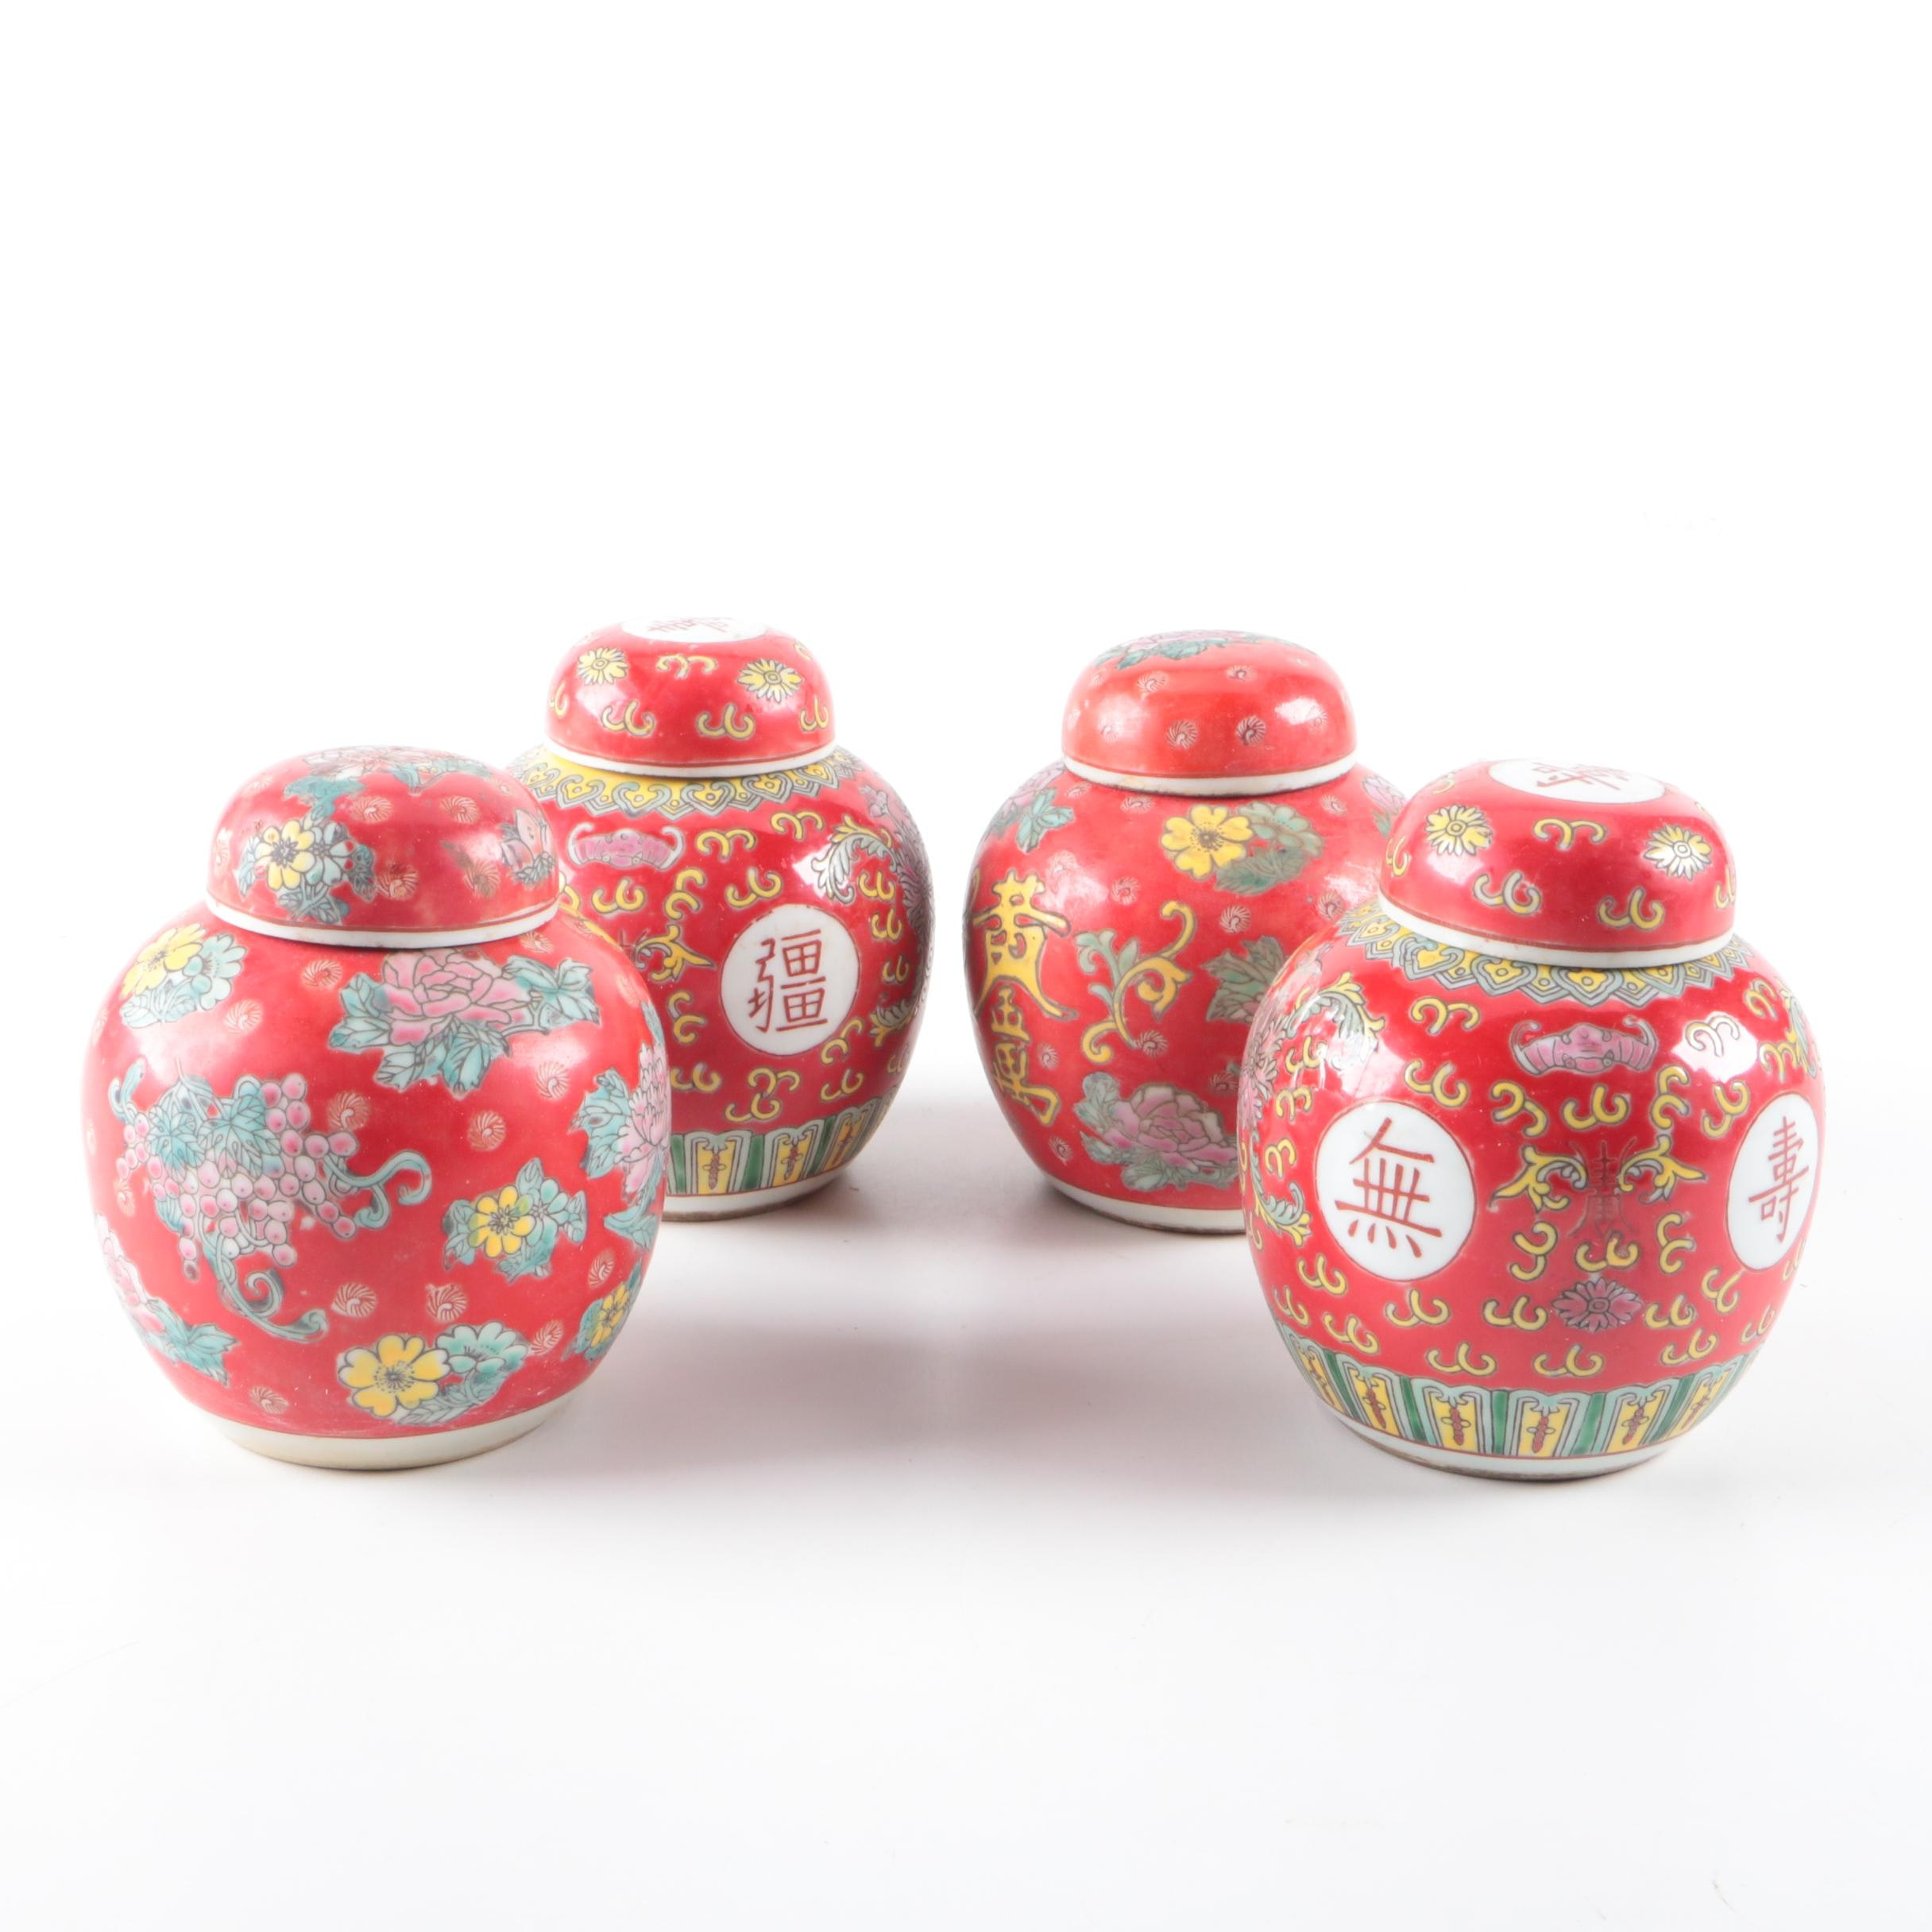 Chinese Hand-embellished Porcelain Ginger Jars